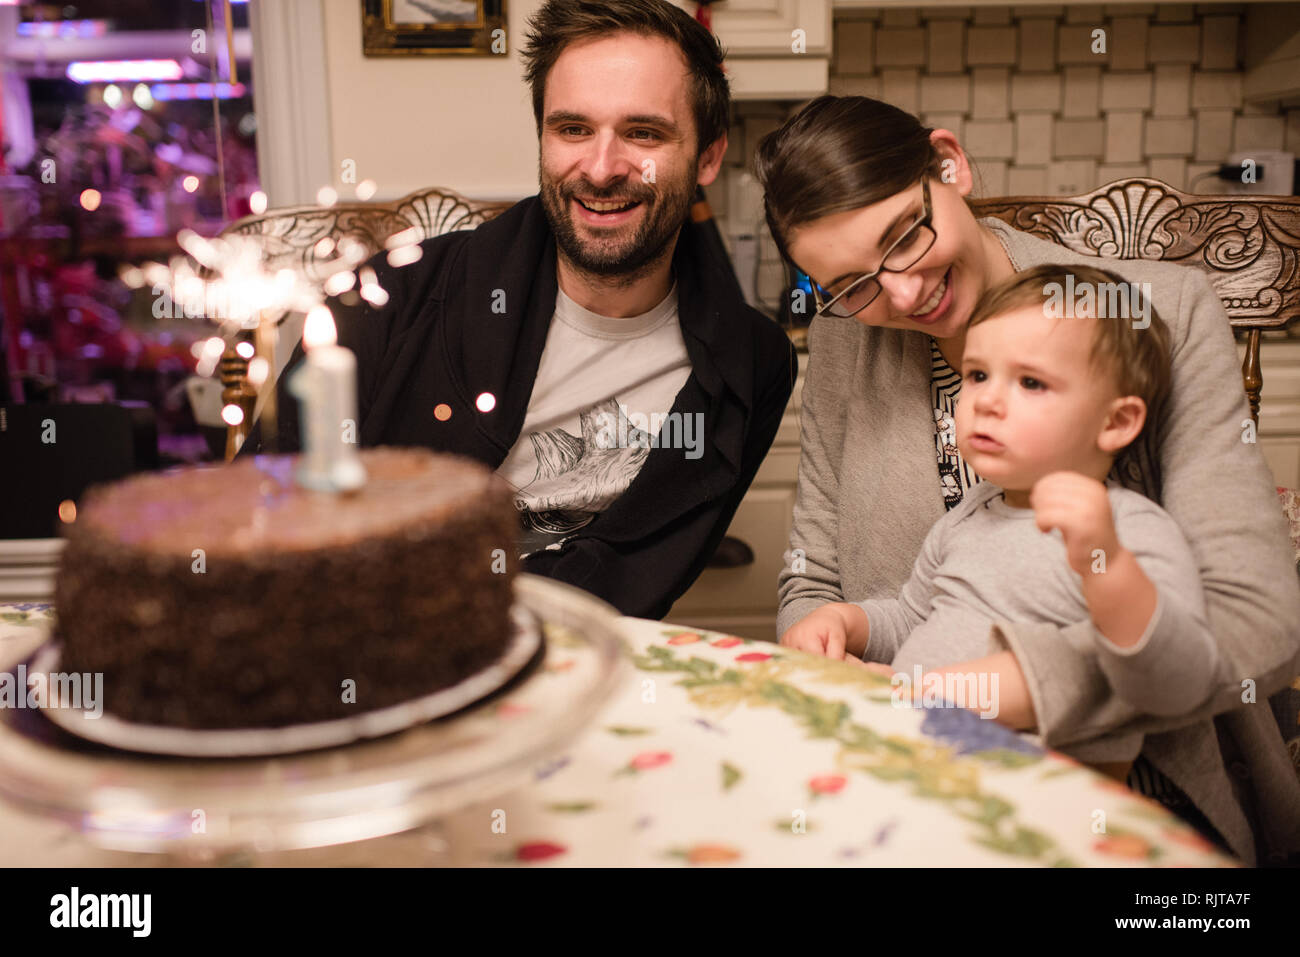 Couple And Baby Boy With First Birthday Cake Stock Photo Alamy